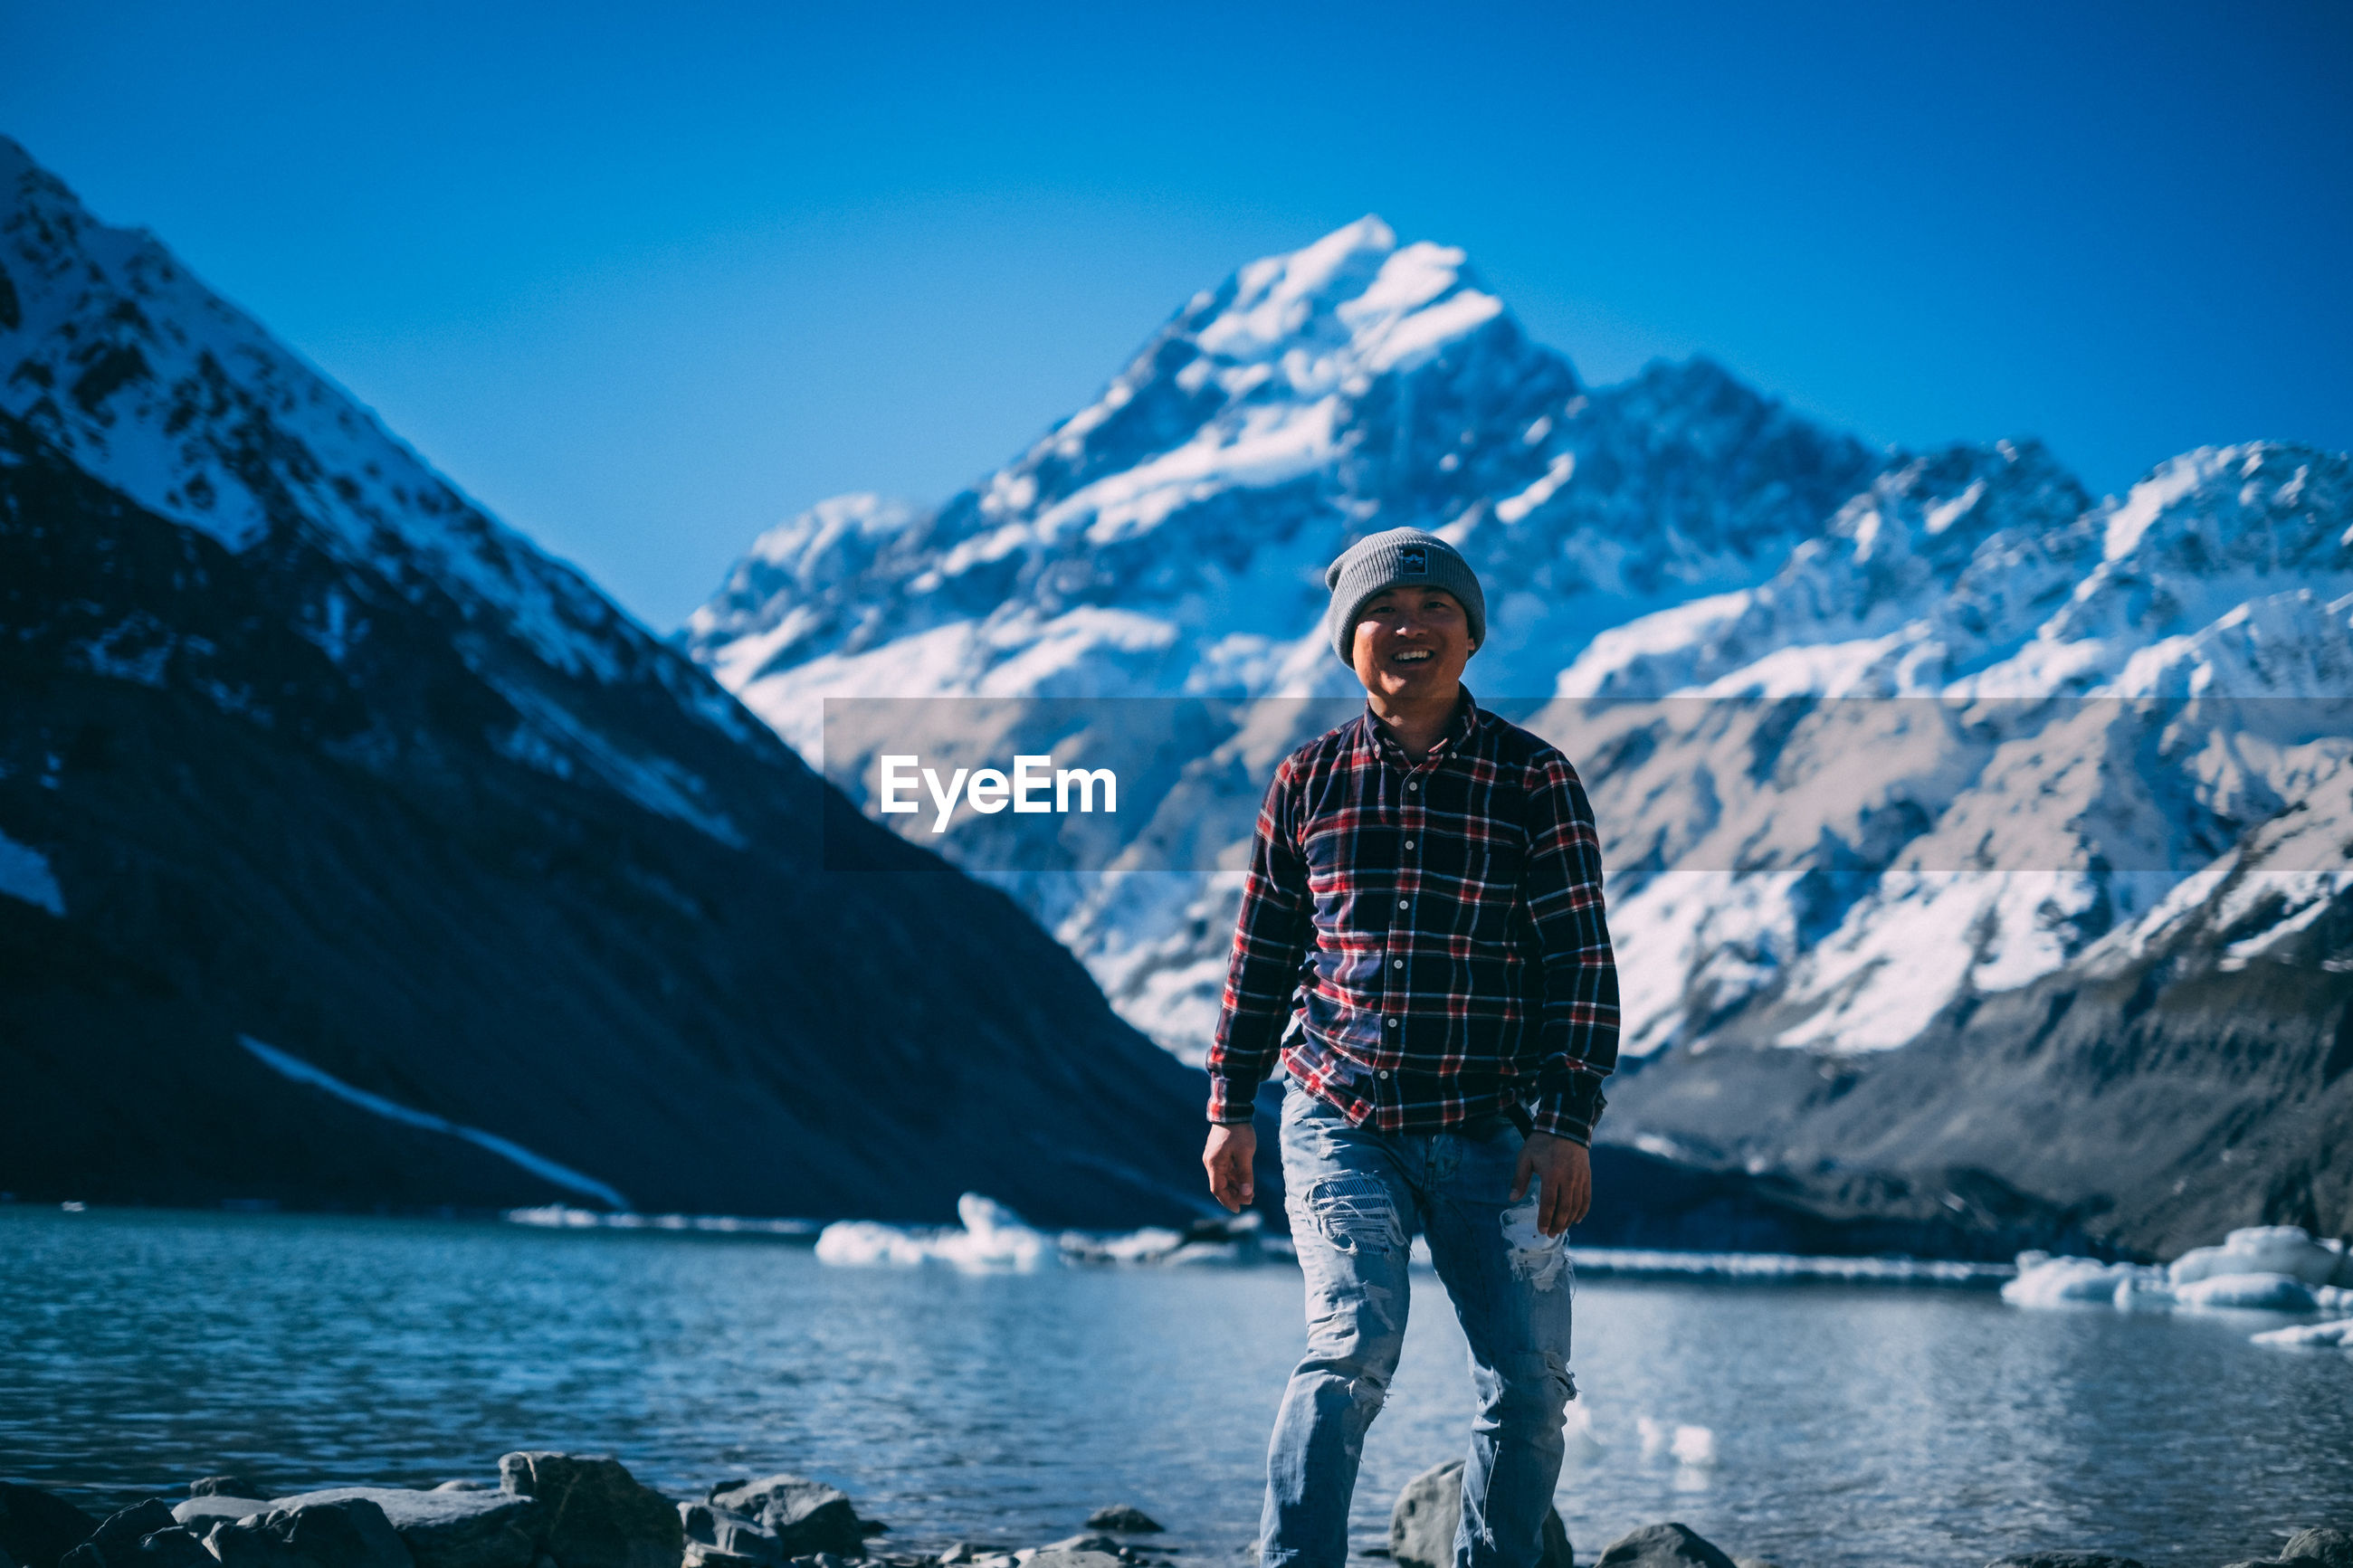 Portrait of man standing on snowcapped mountain against sky